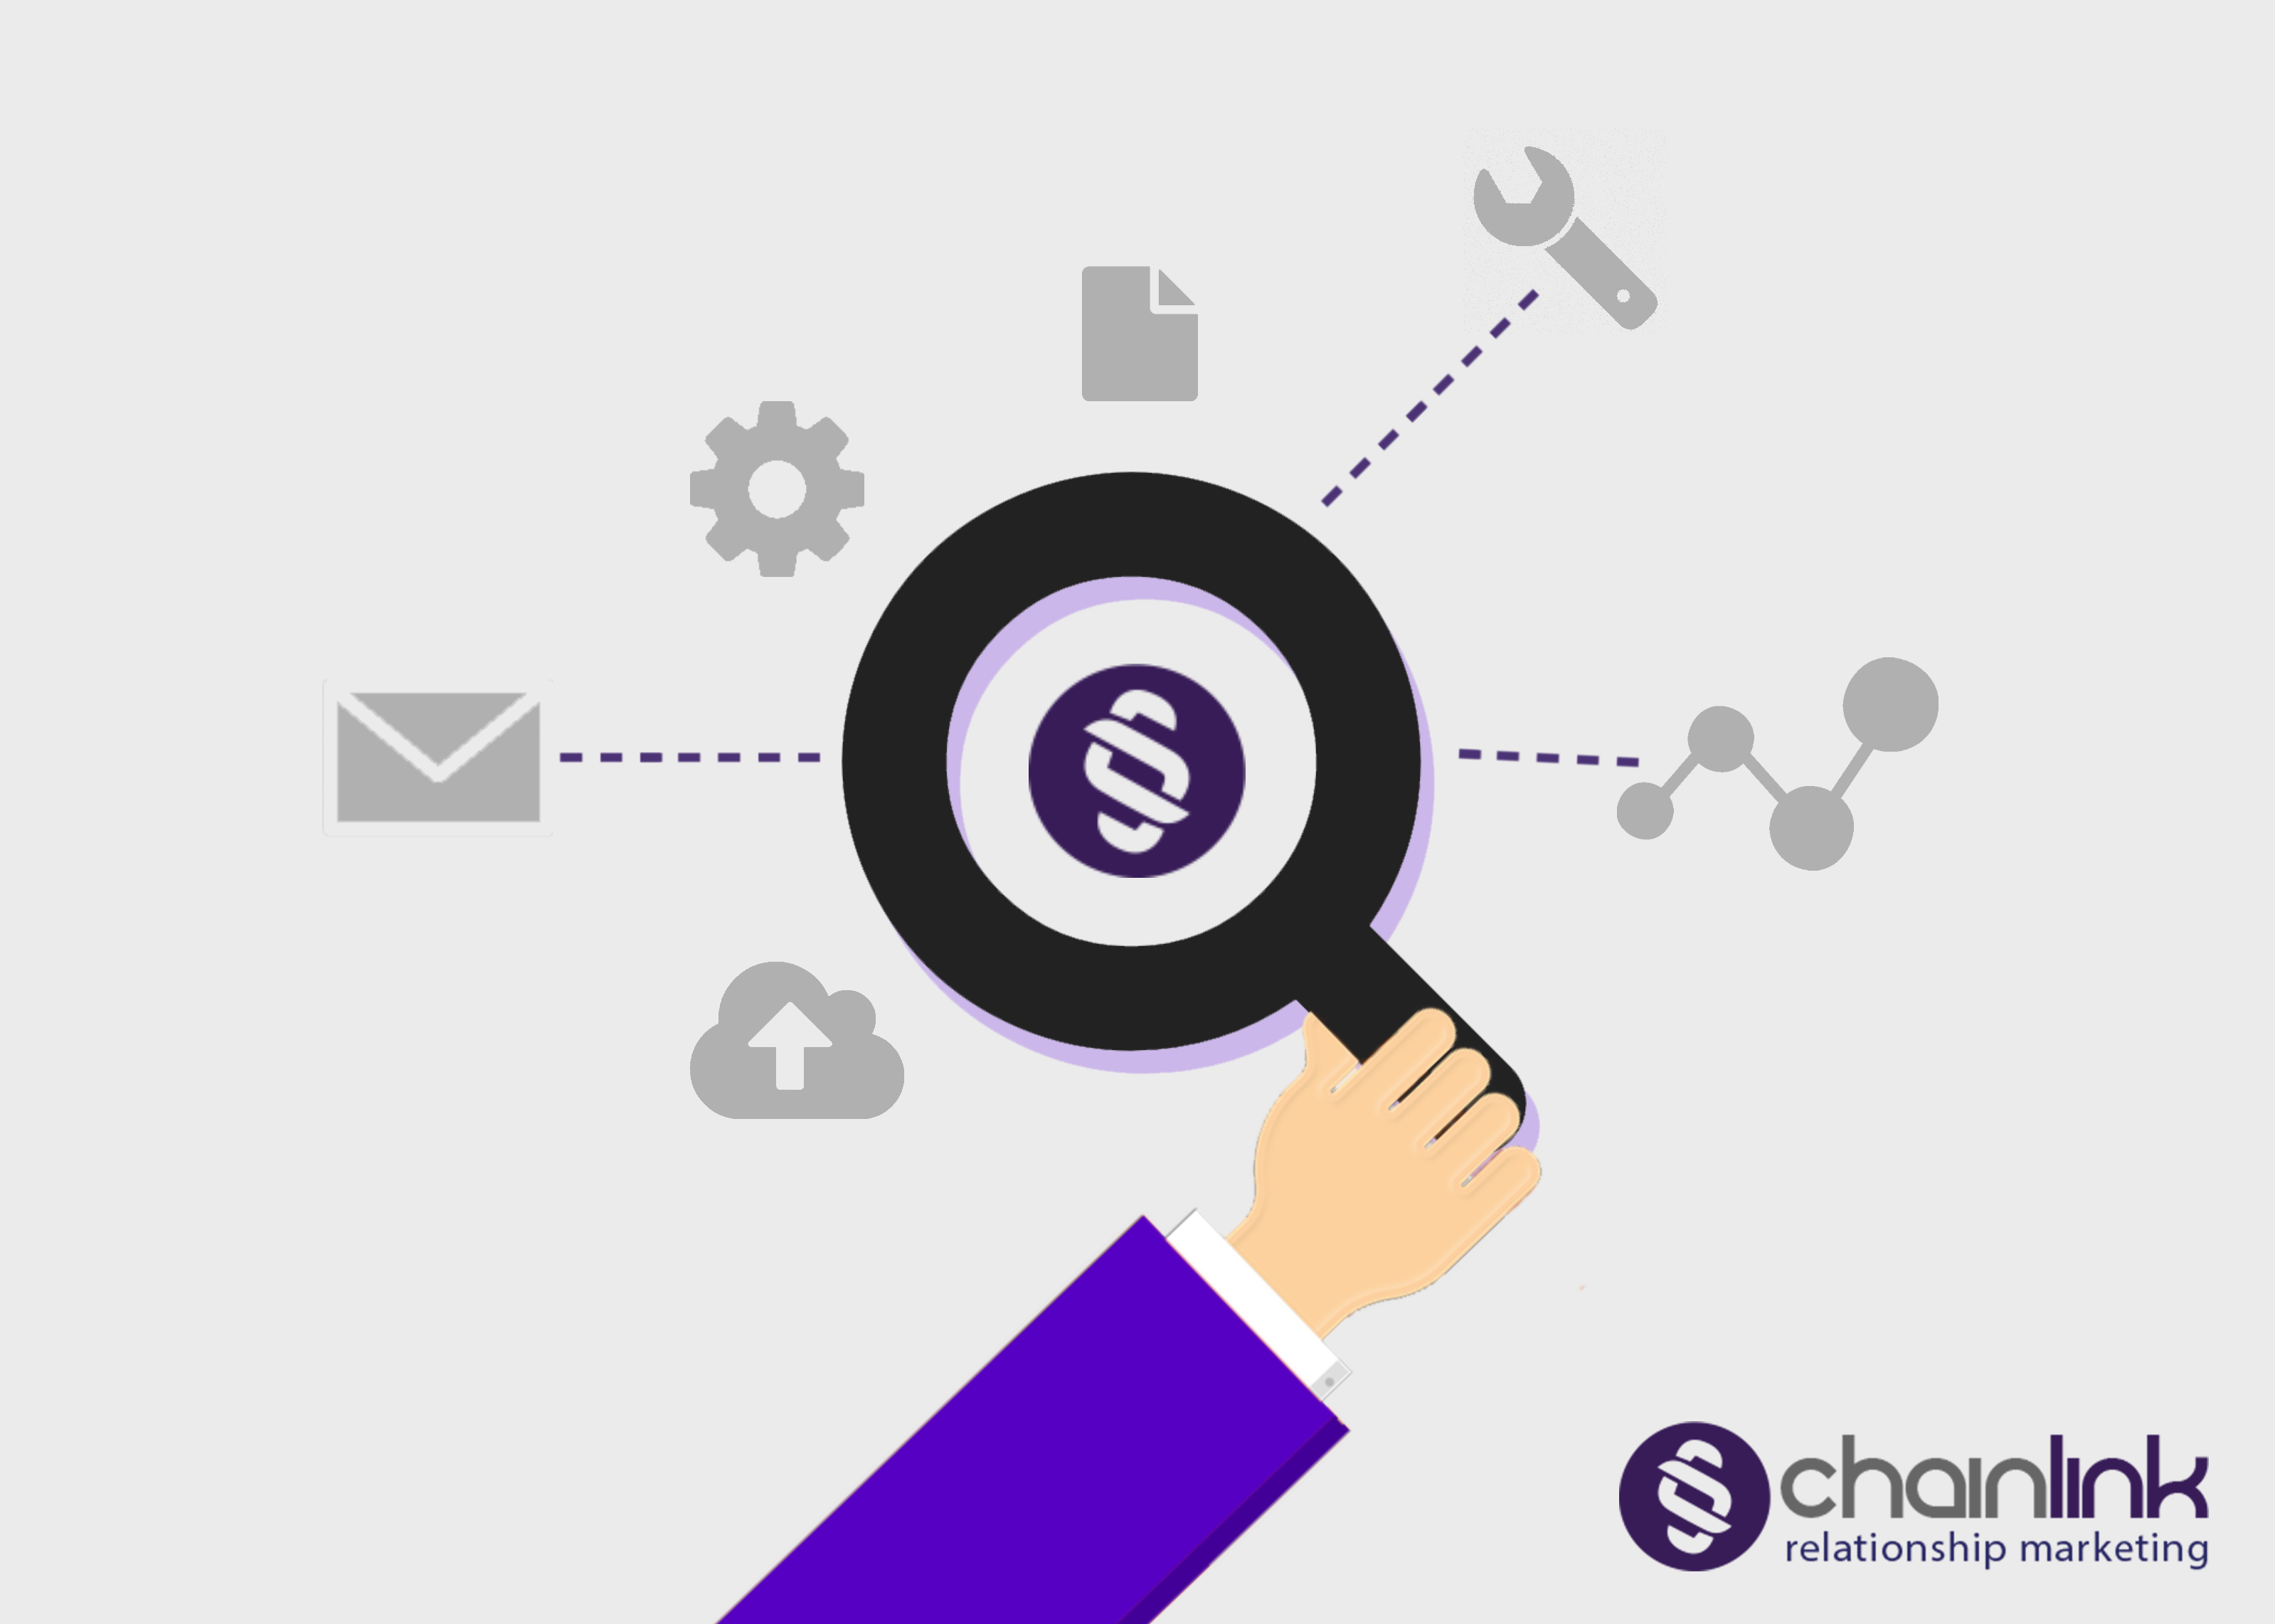 Chainlink Relationship Marketing- SEO strategy changing